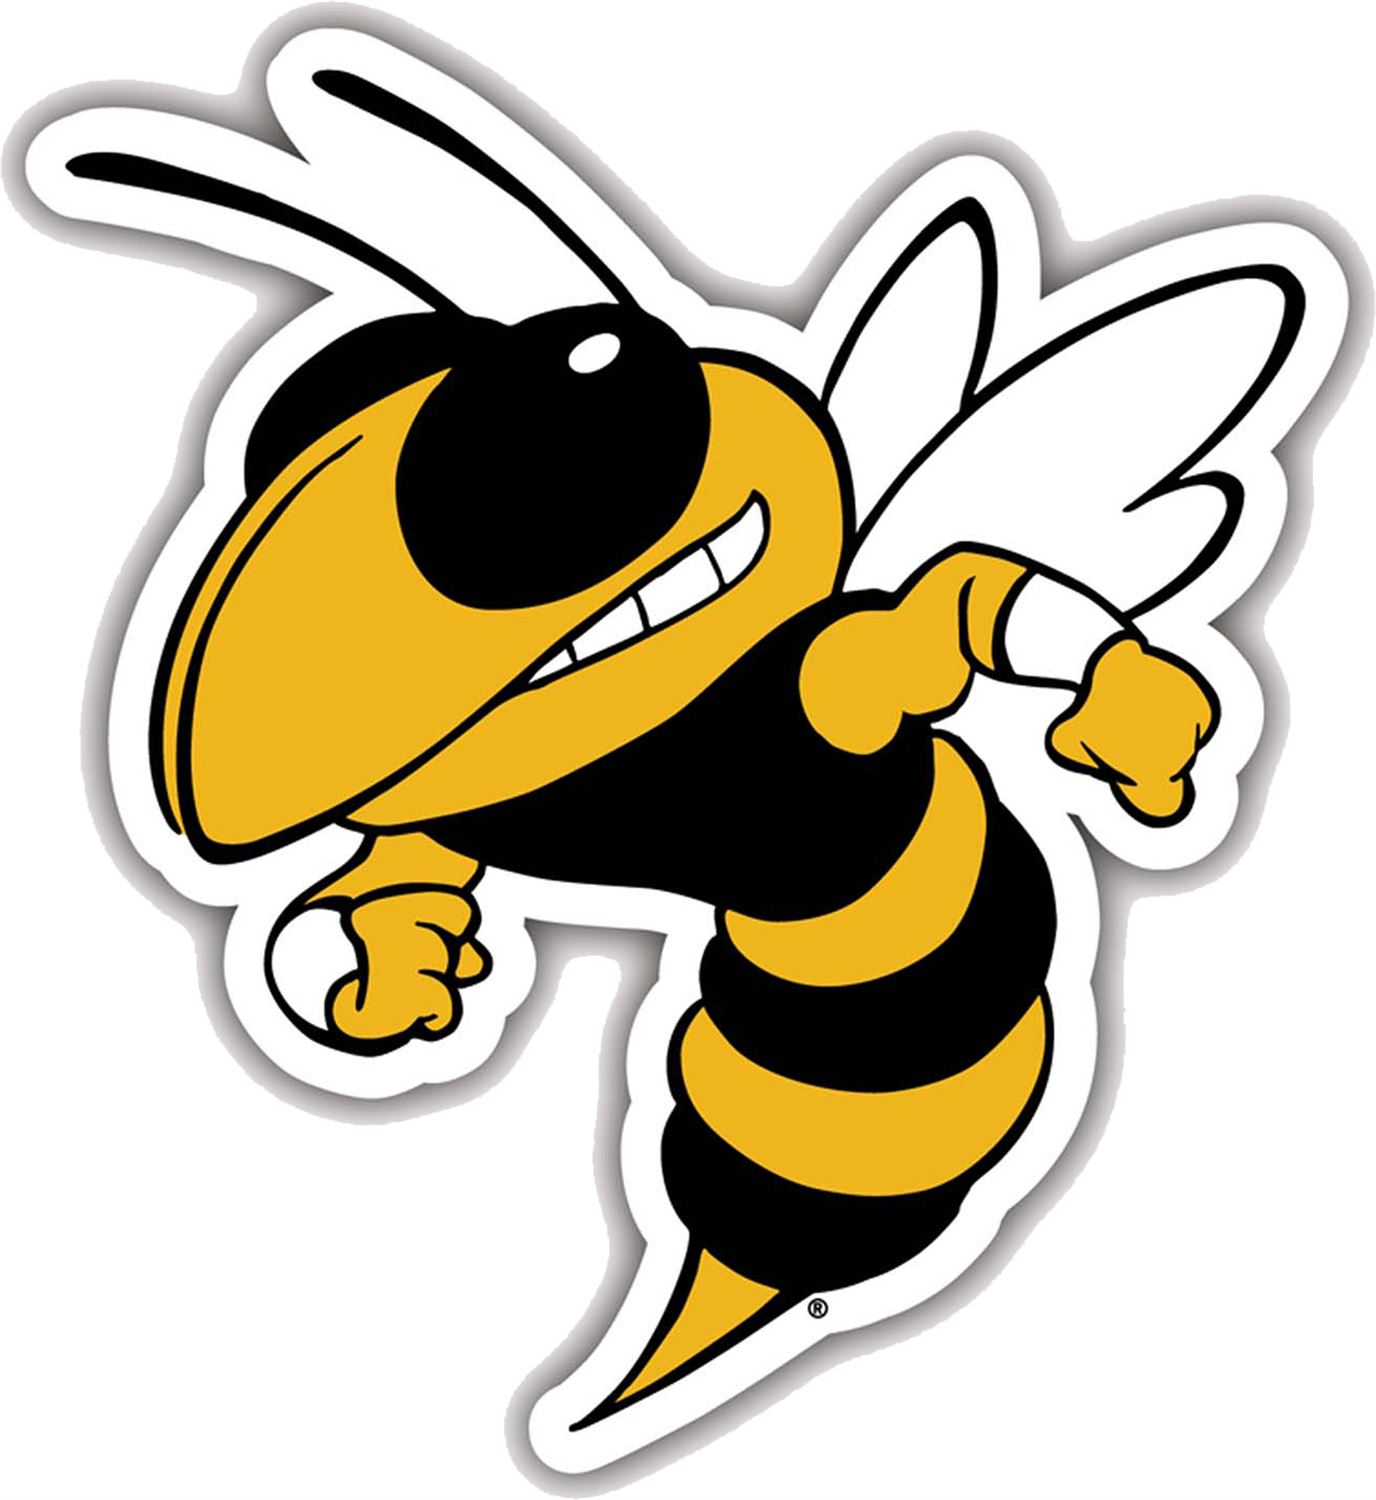 Blessed Sacrament Yellow Jackets - BSYJ -MMG '16